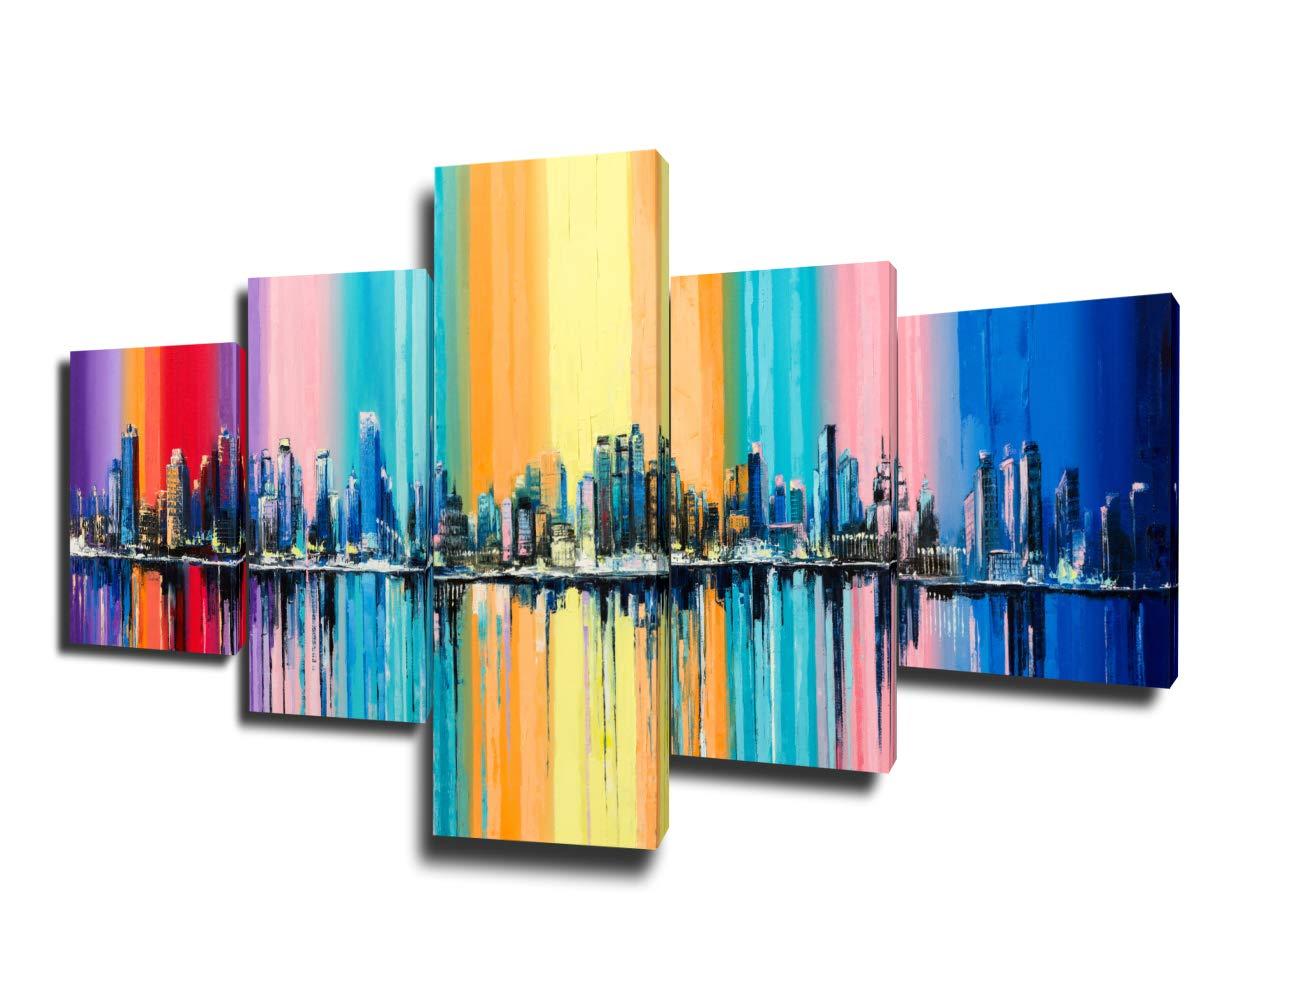 Native American Decor City's Skyline Paintings United States Cityscape  Pictures 5 Piece Canvas Wall Art Modern Artwork Home Decor for Living Room